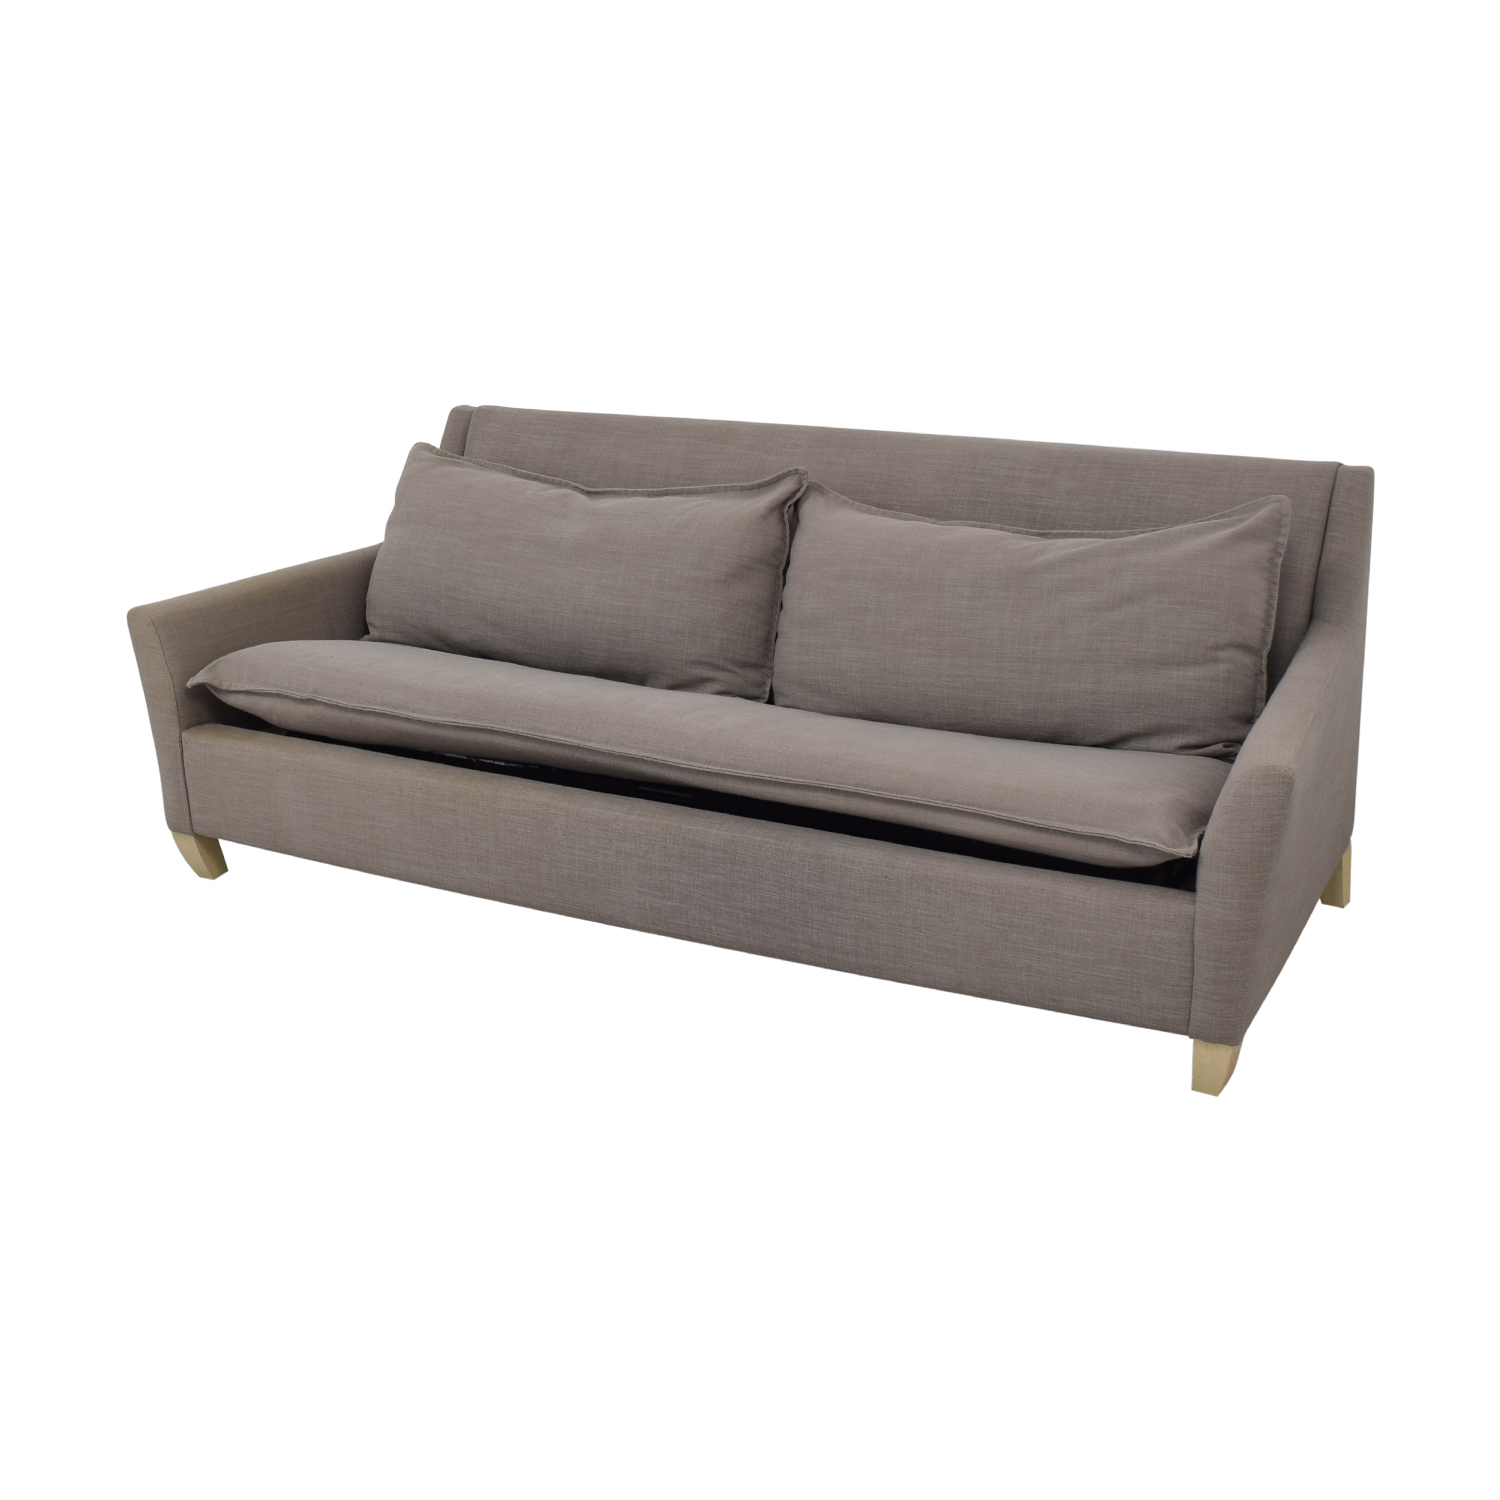 buy West Elm Bliss Queen Sleeper Sofa West Elm